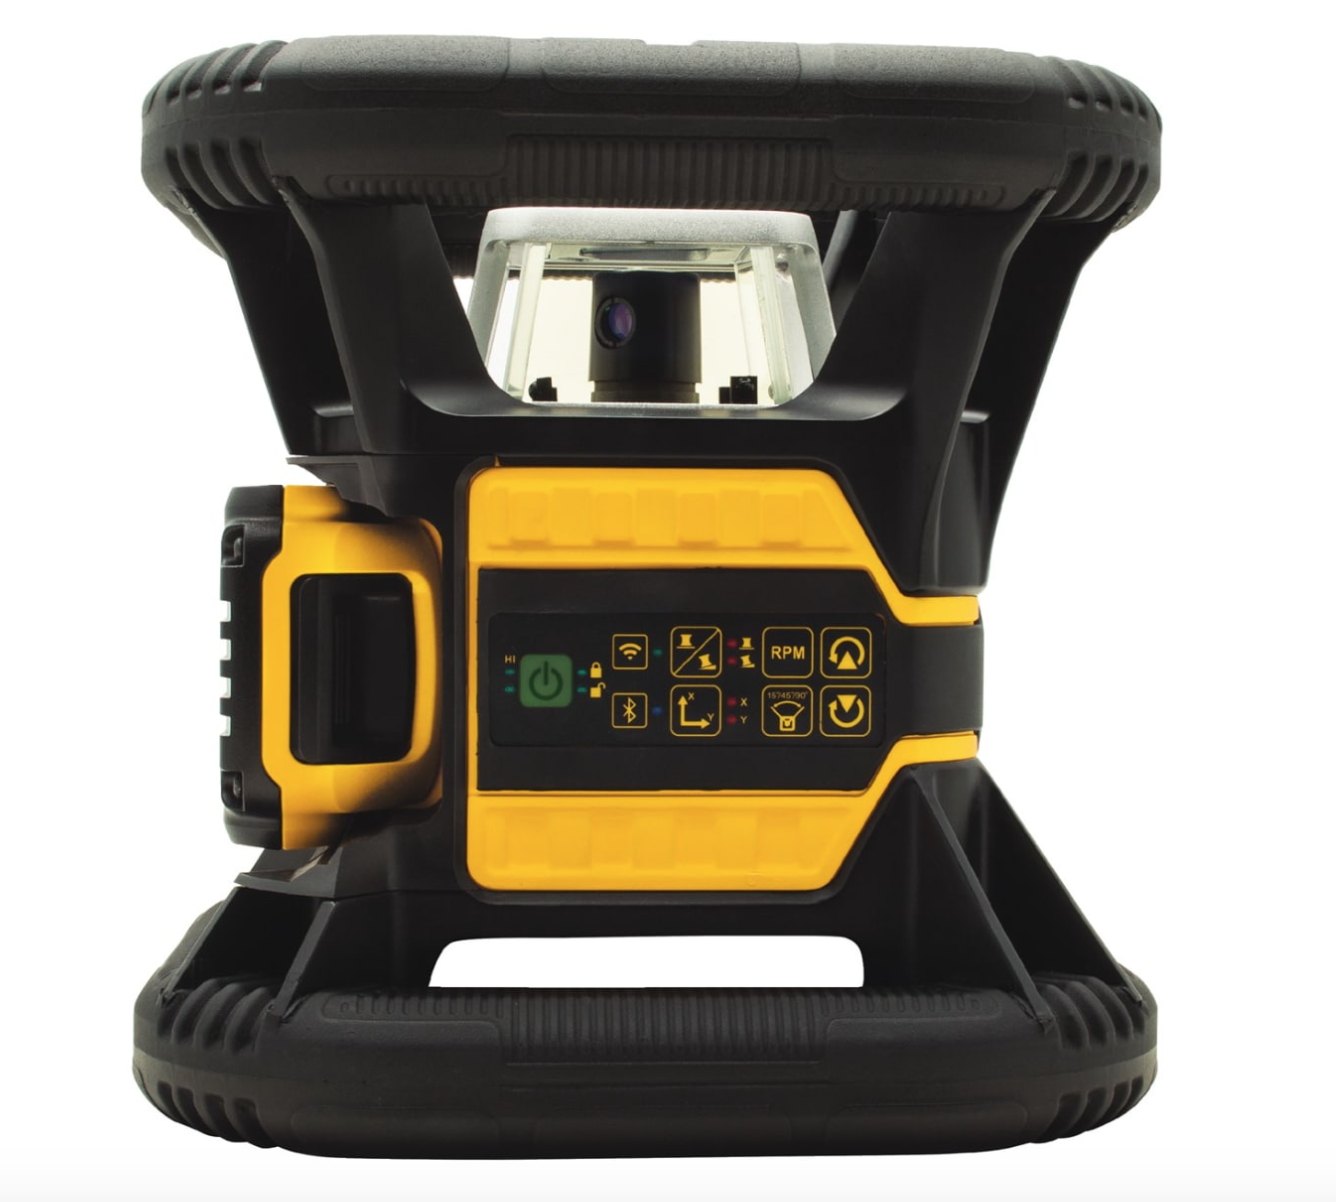 DeWalt steps up its laser game with pair of new rotary